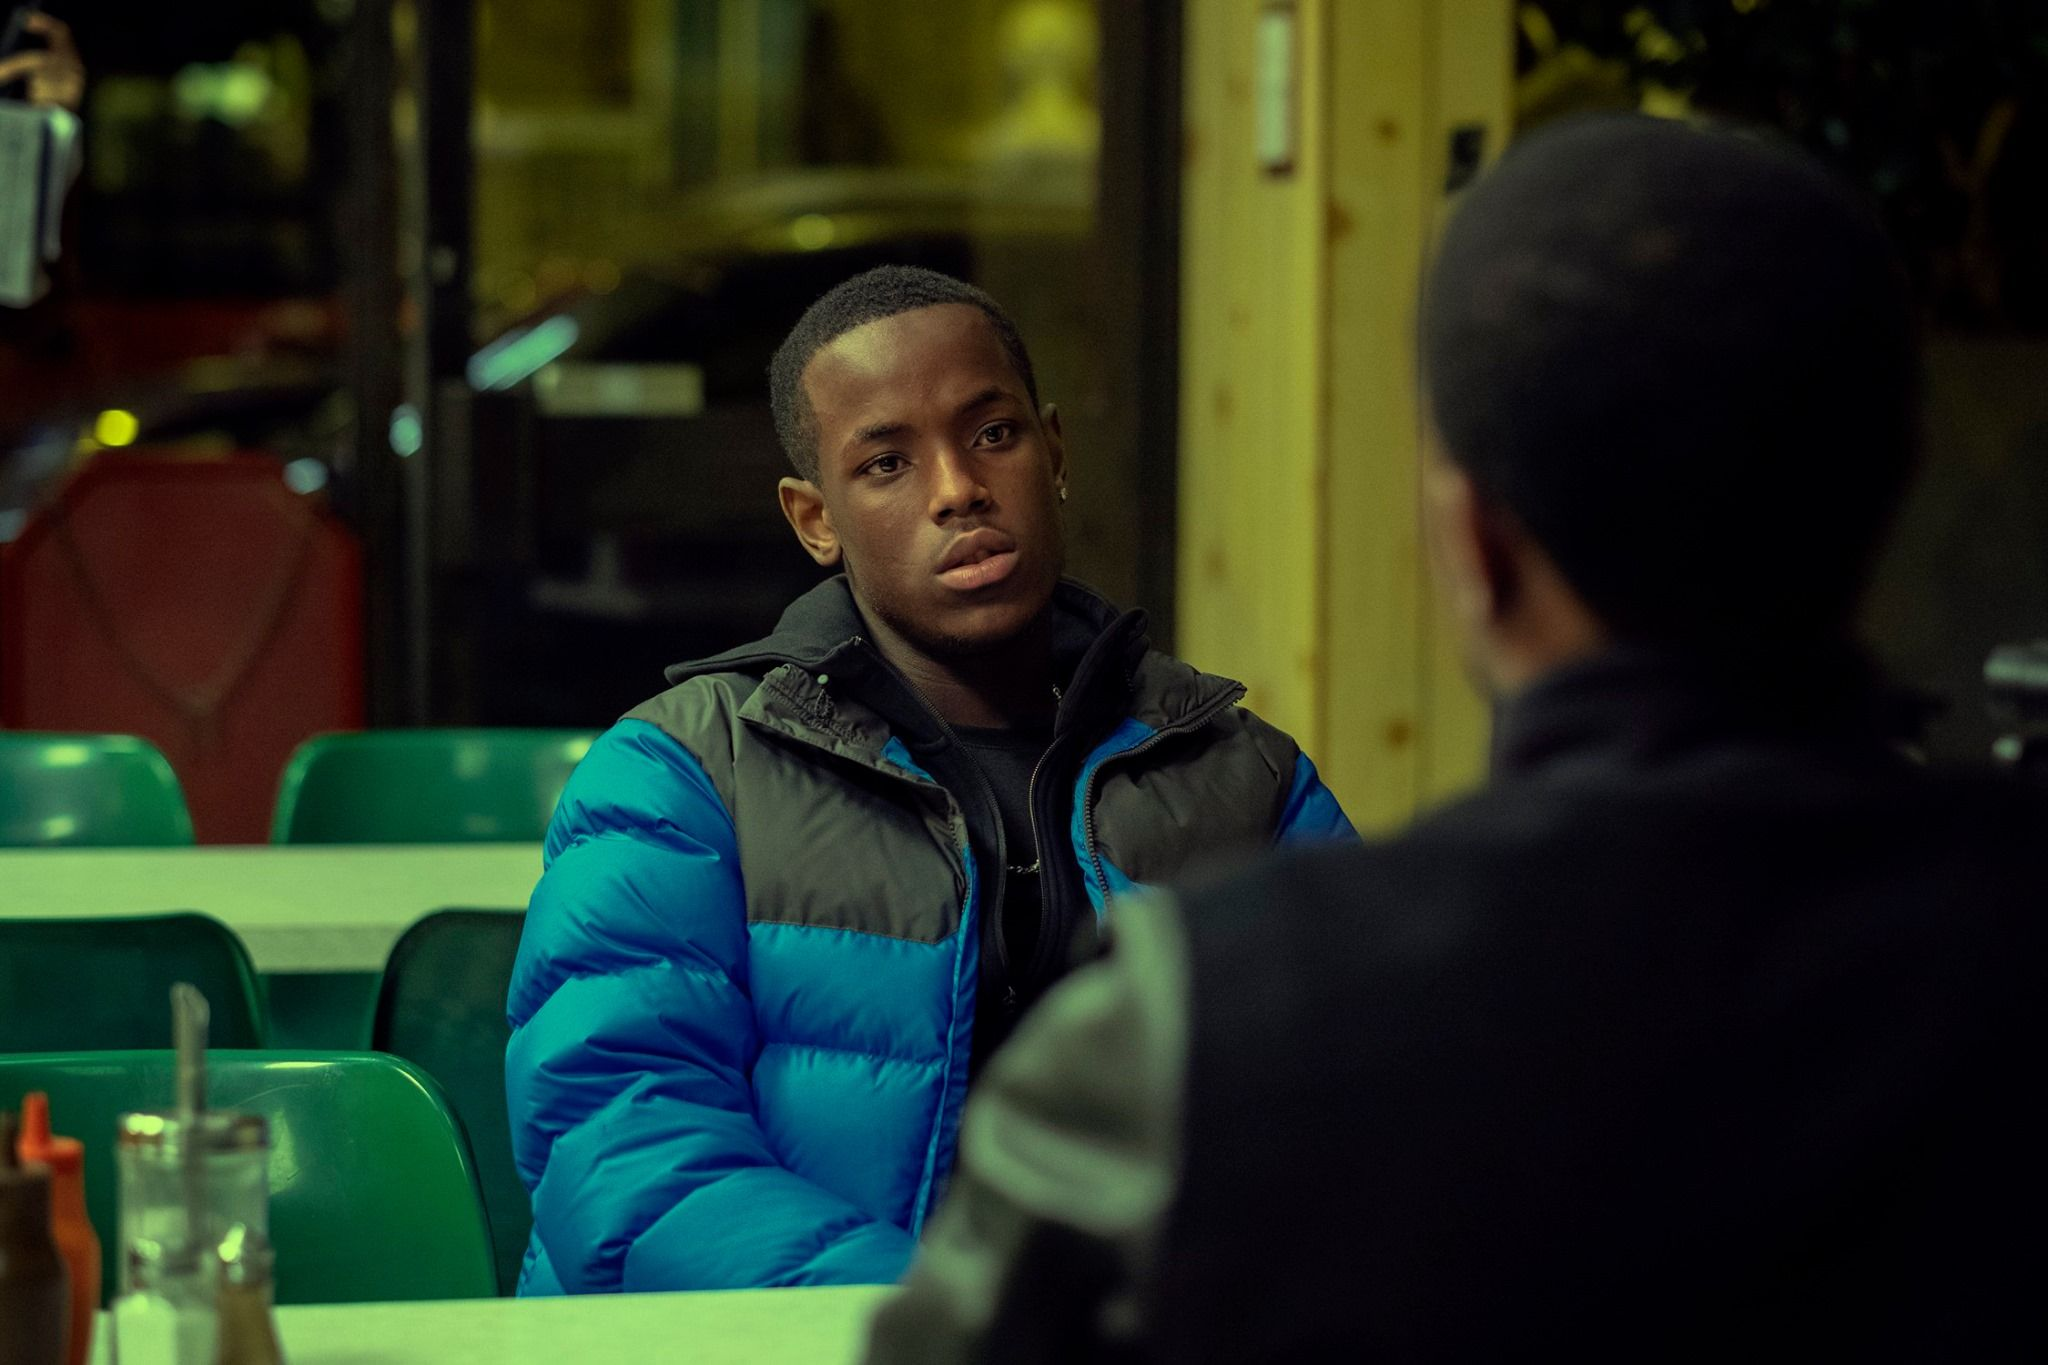 Image may contain: Top Boy, Top Boy season 3, new series, series three, Netflix, Drake, London, new, drama, cast, trailer, release date, Furniture, Chair, Sleeve, Overcoat, Sitting, Coat, Jacket, Apparel, Clothing, Human, Person